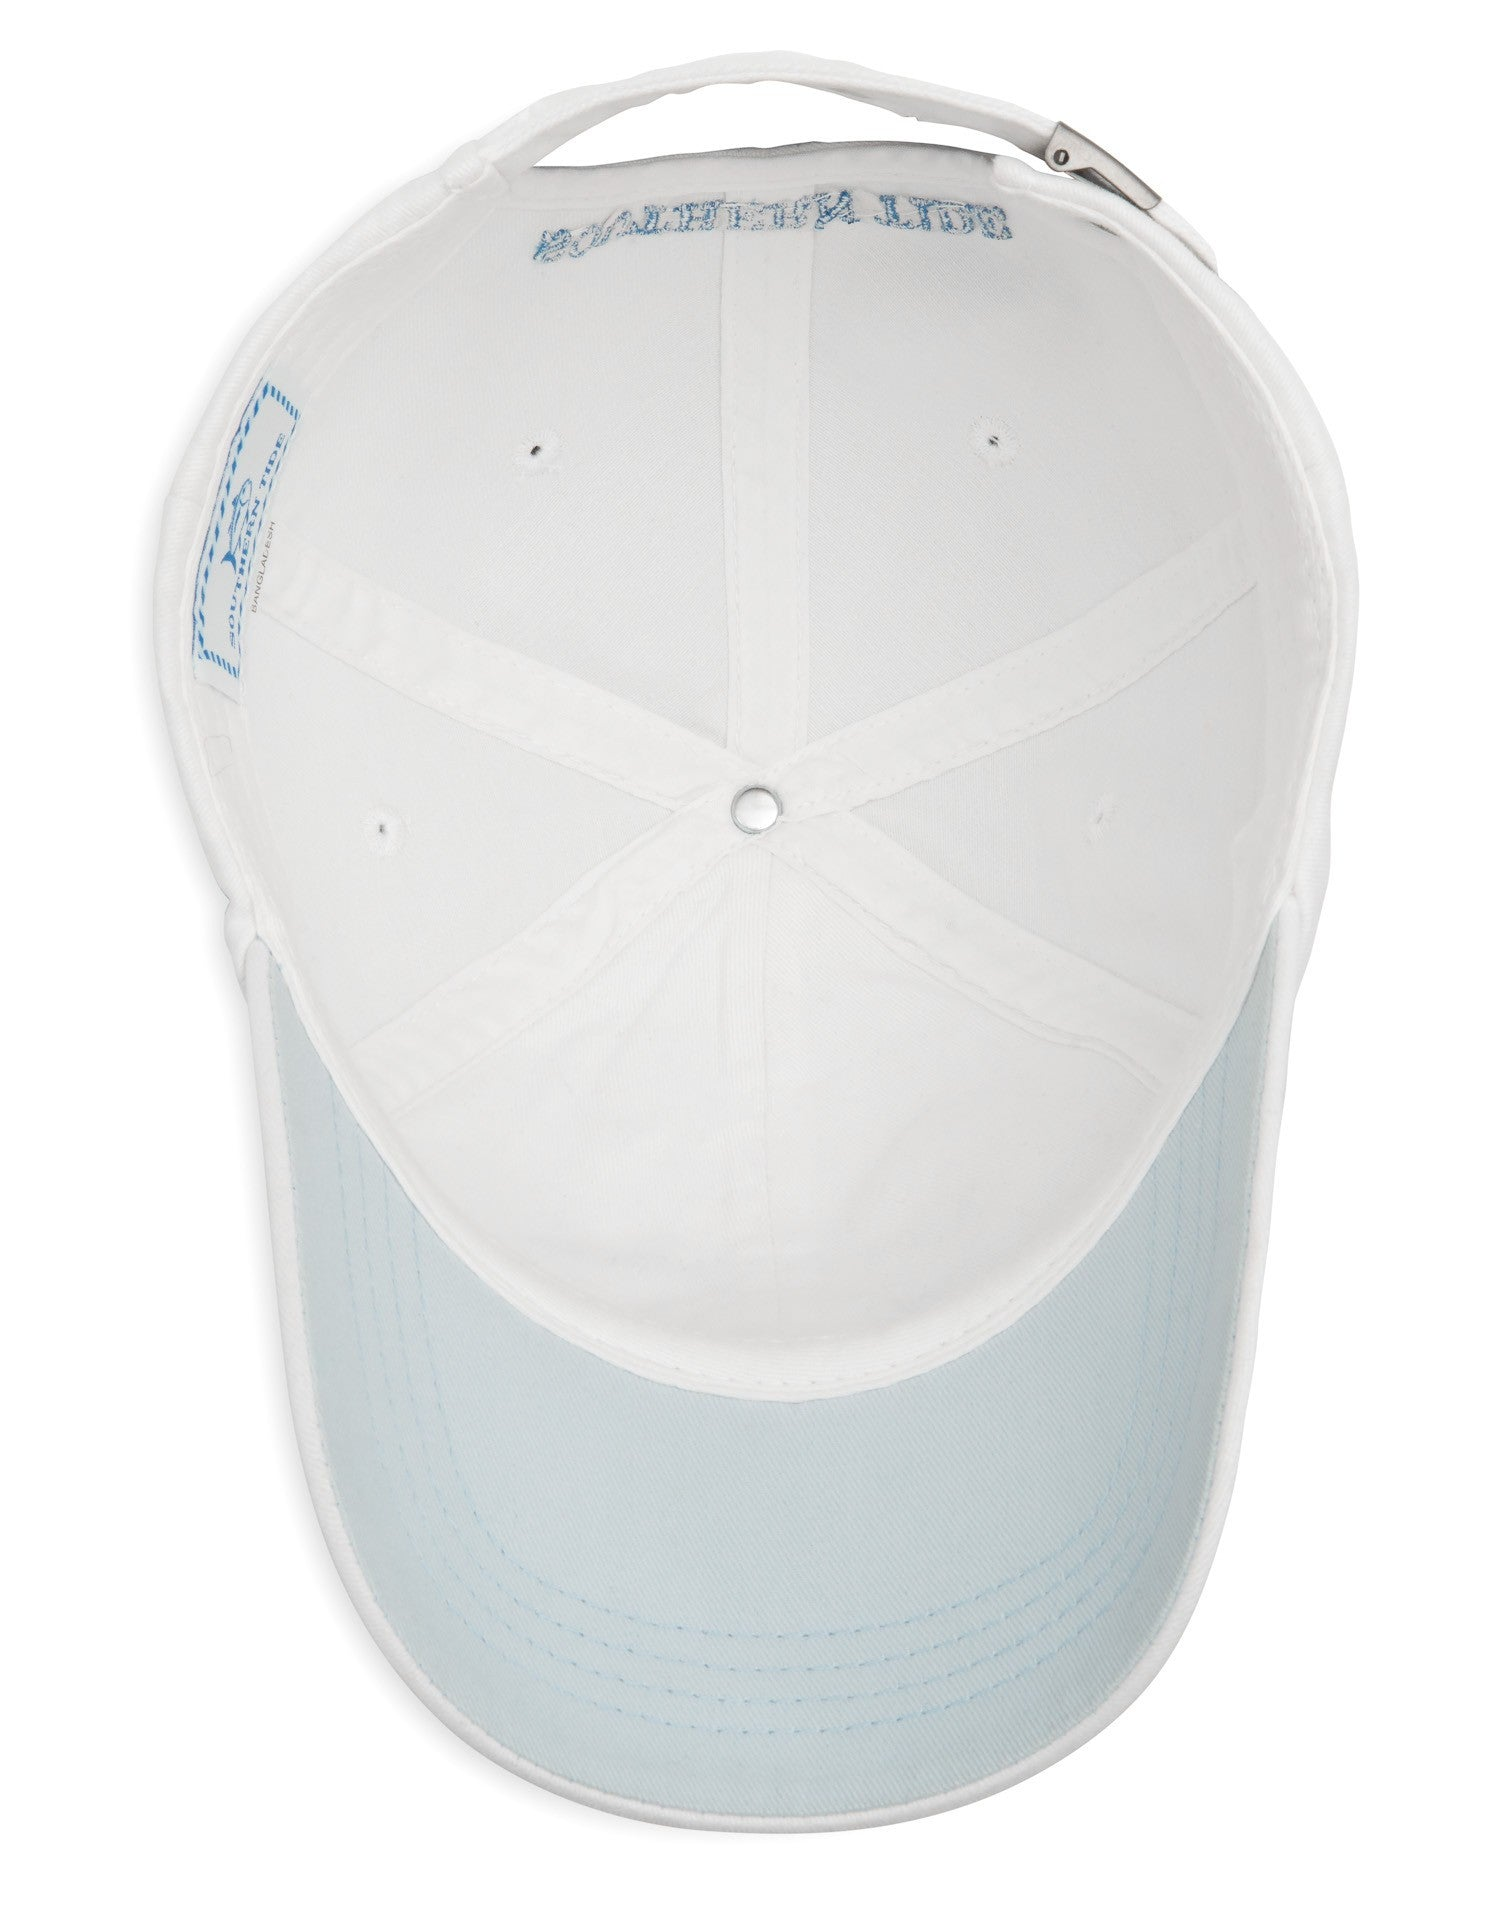 Southern Tide Original Skipjack Hat in White by Southern Tide from THE LUCKY KNOT - 3